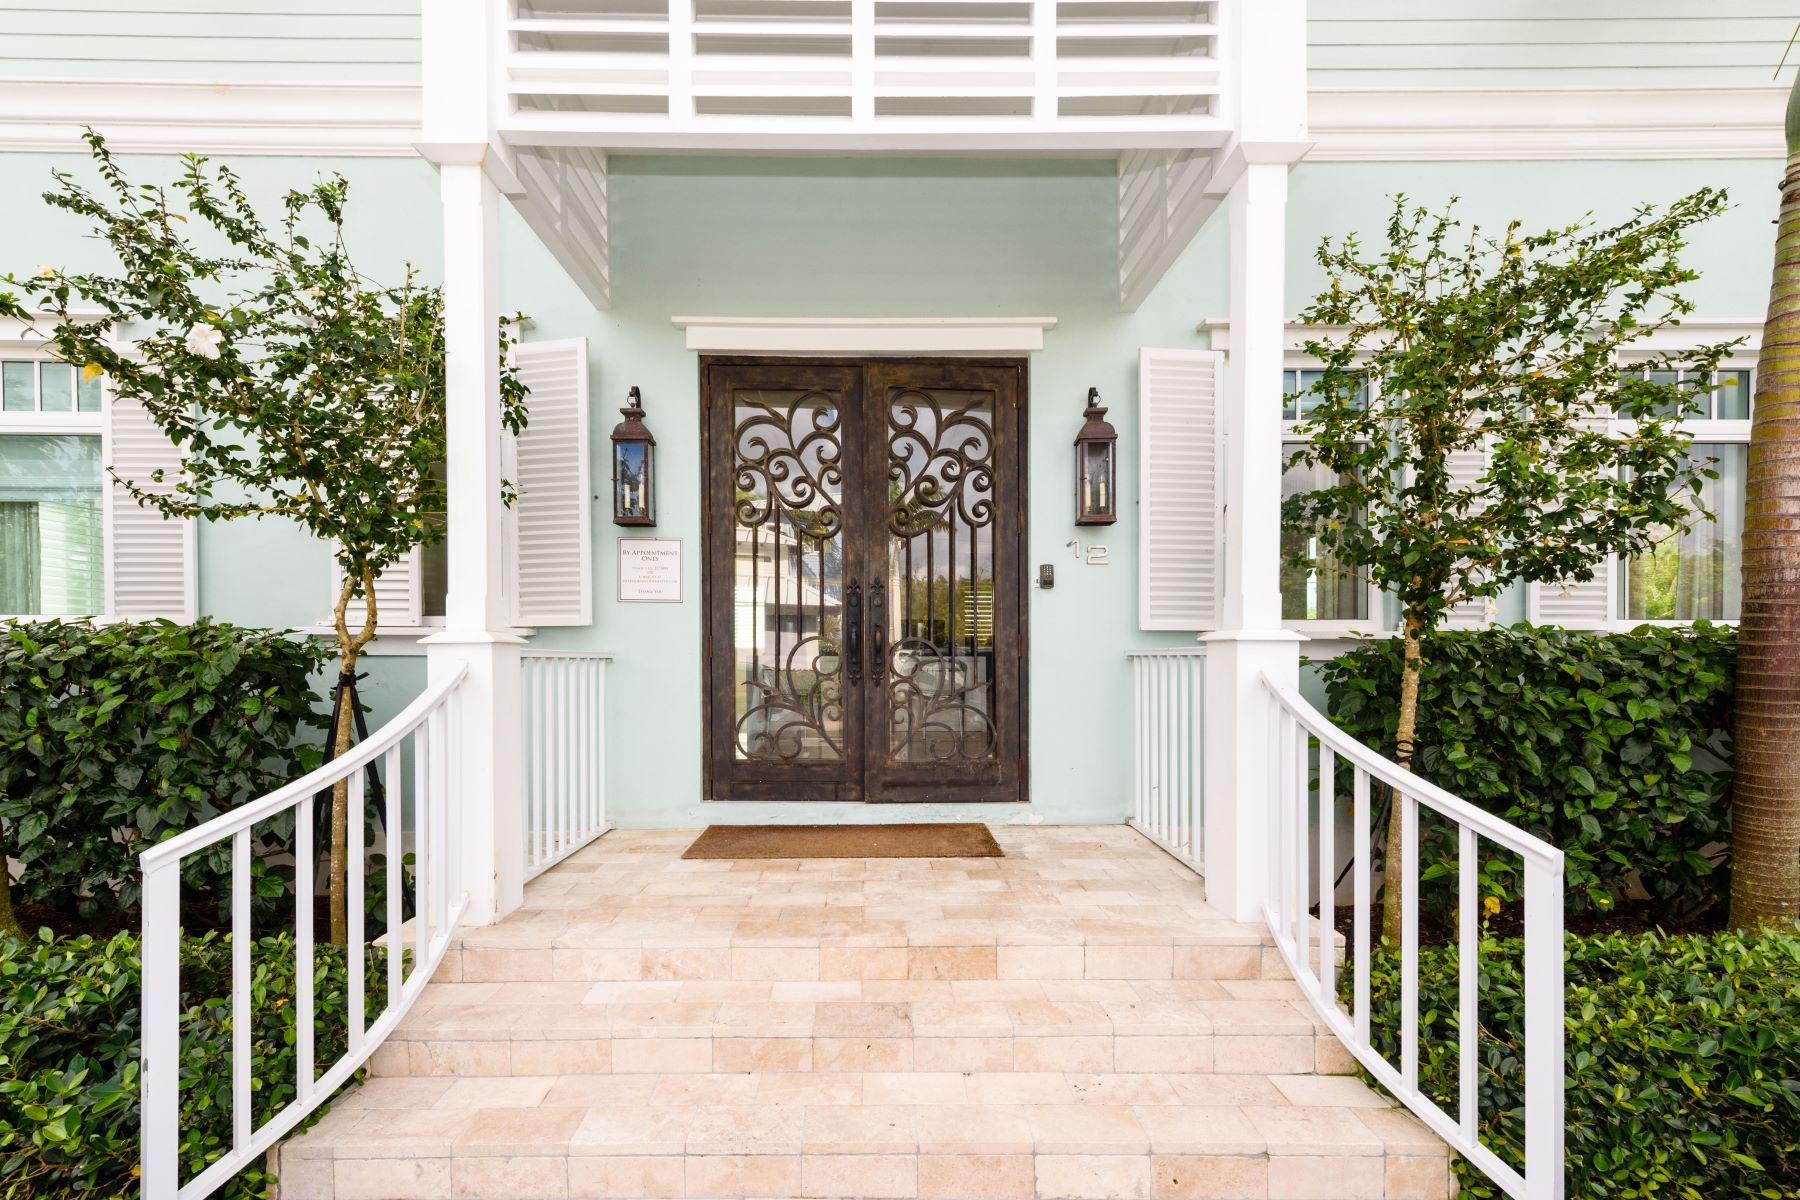 Commercial for Sale at Pineapple House on Blake Road - Commercial Blake Road, West Bay Street, Nassau And Paradise Island Bahamas